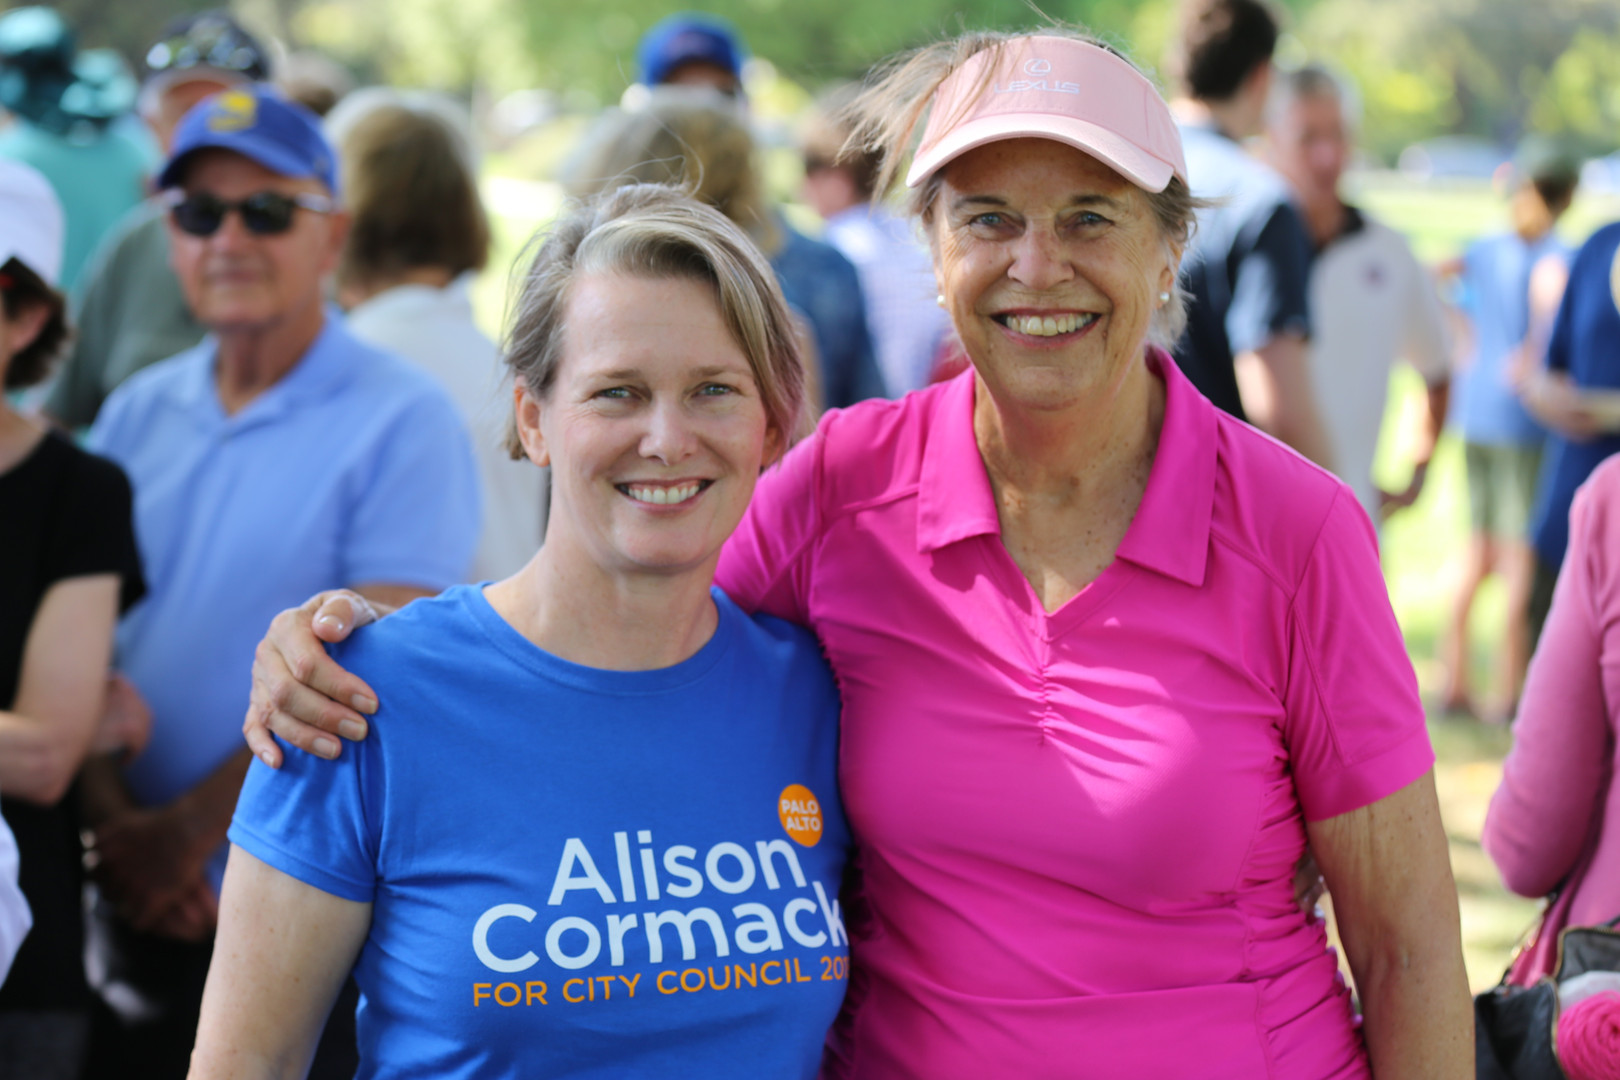 Alison Cormack and Betsy Bechtel